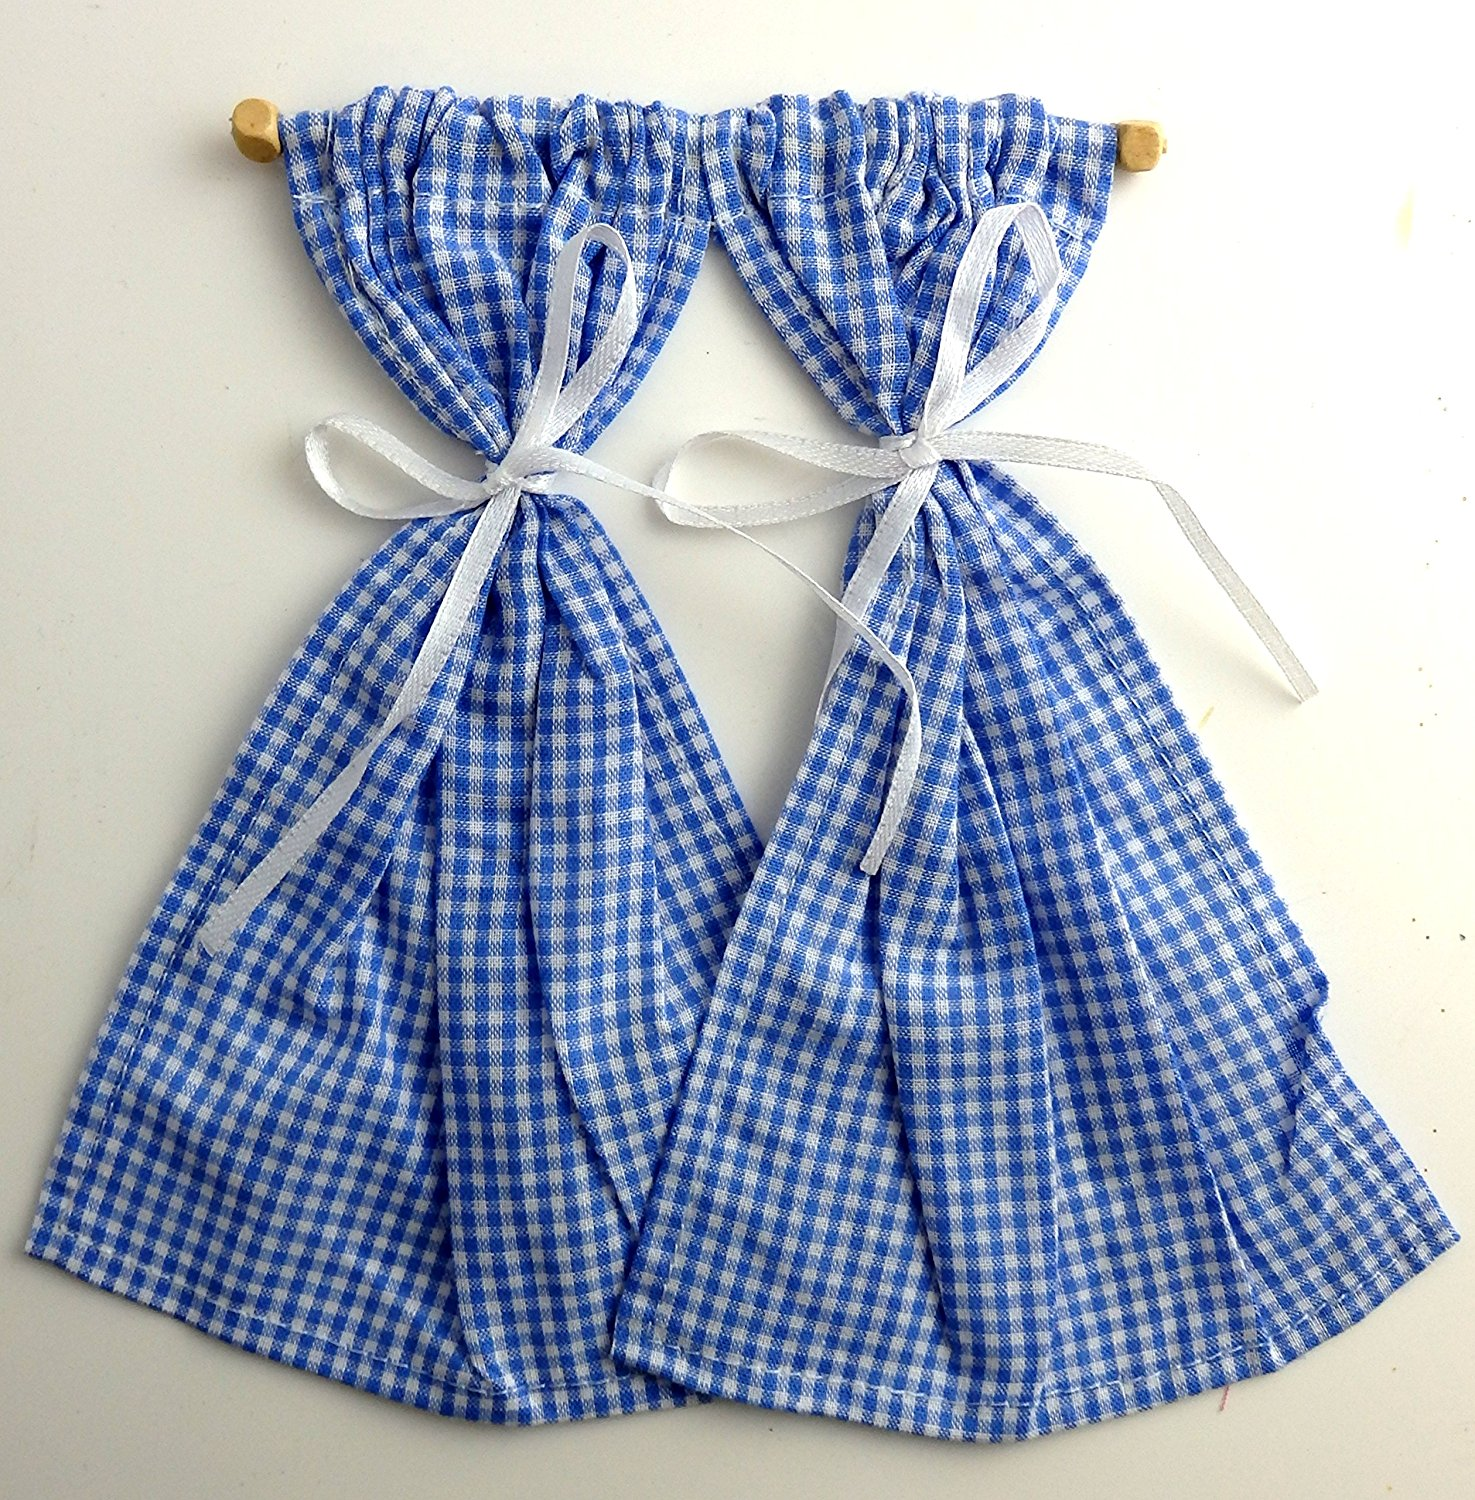 353a44de2373 Get Quotations · Melody Jane Dolls Houses House Miniature 1:12 Scale  Accessory Blue Gingham Curtains On Rail